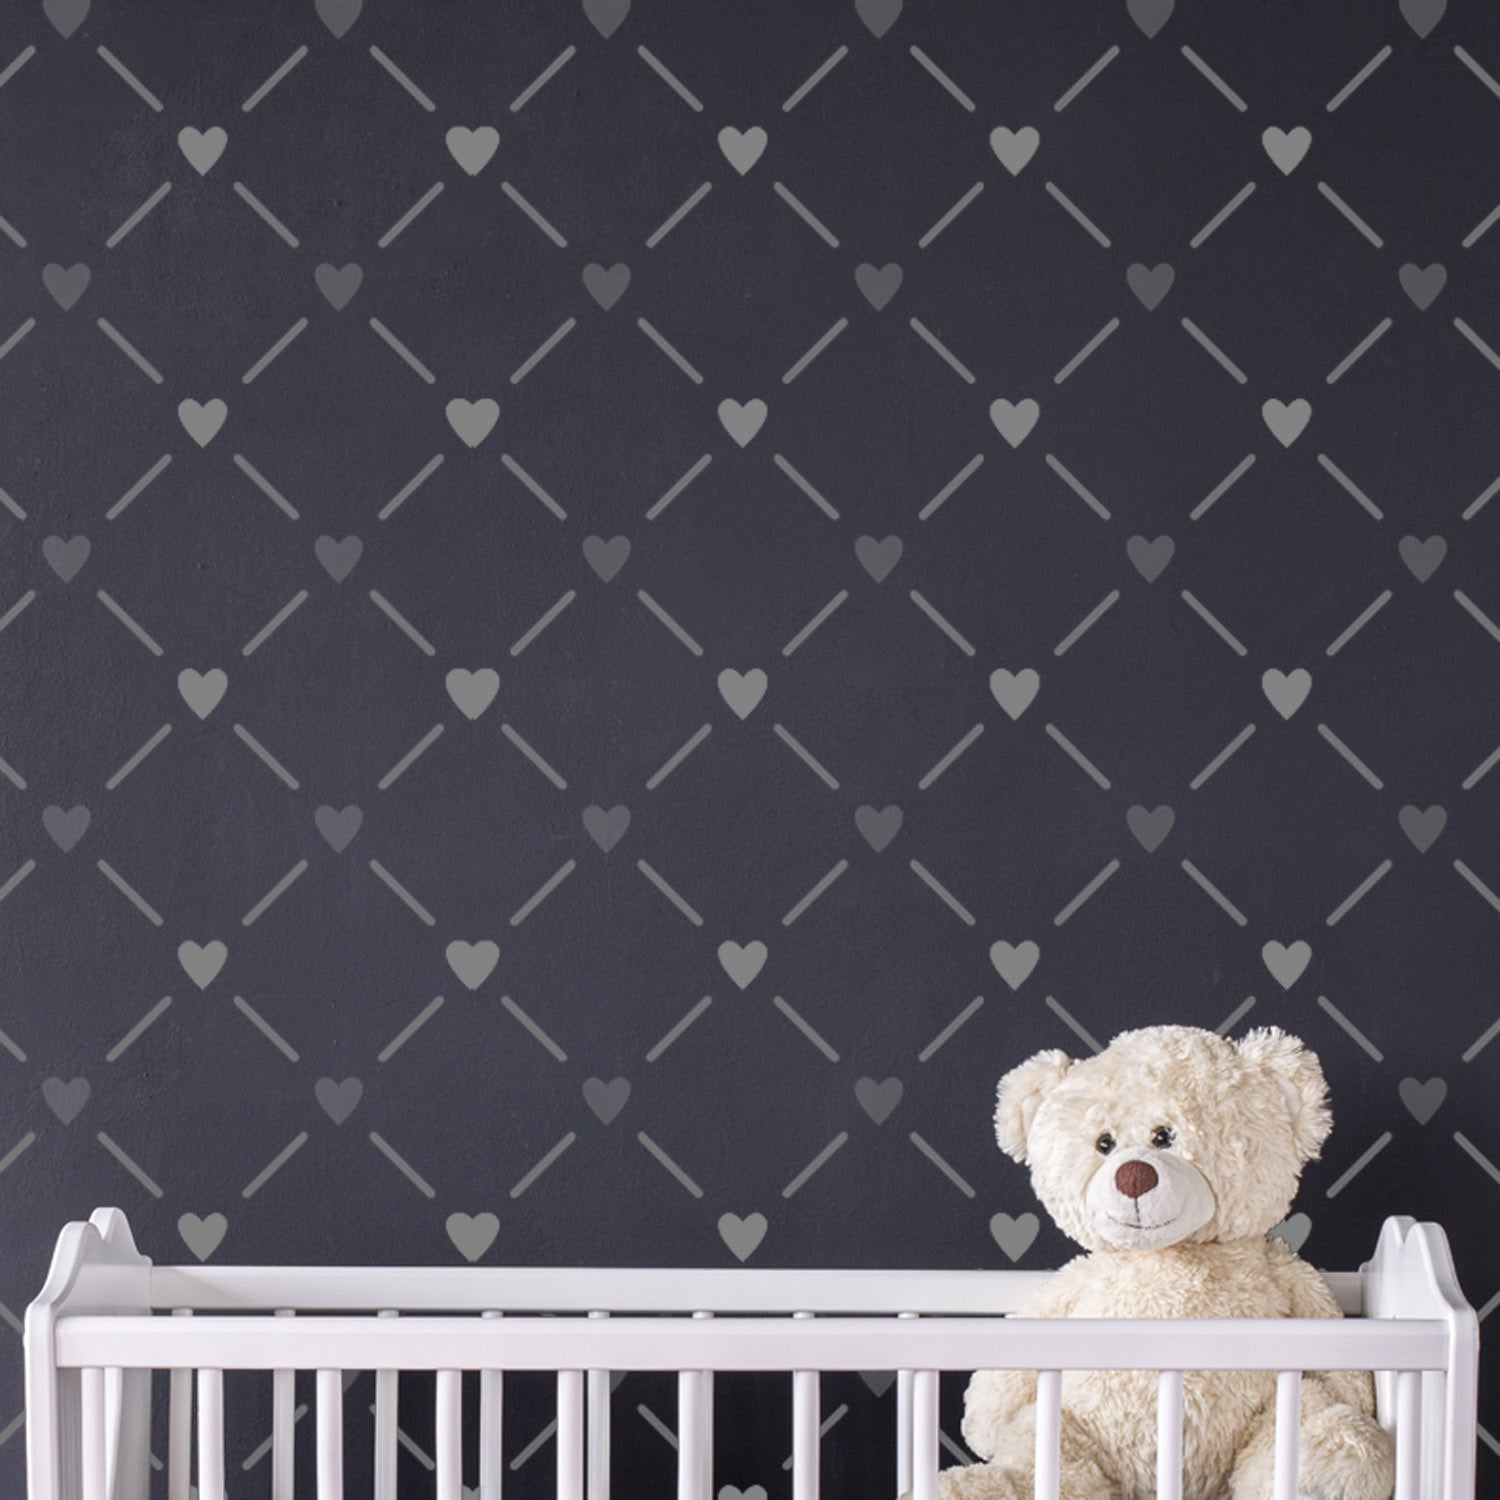 CraftStar Heart Lattice Wall Stencil on Nursery Wall